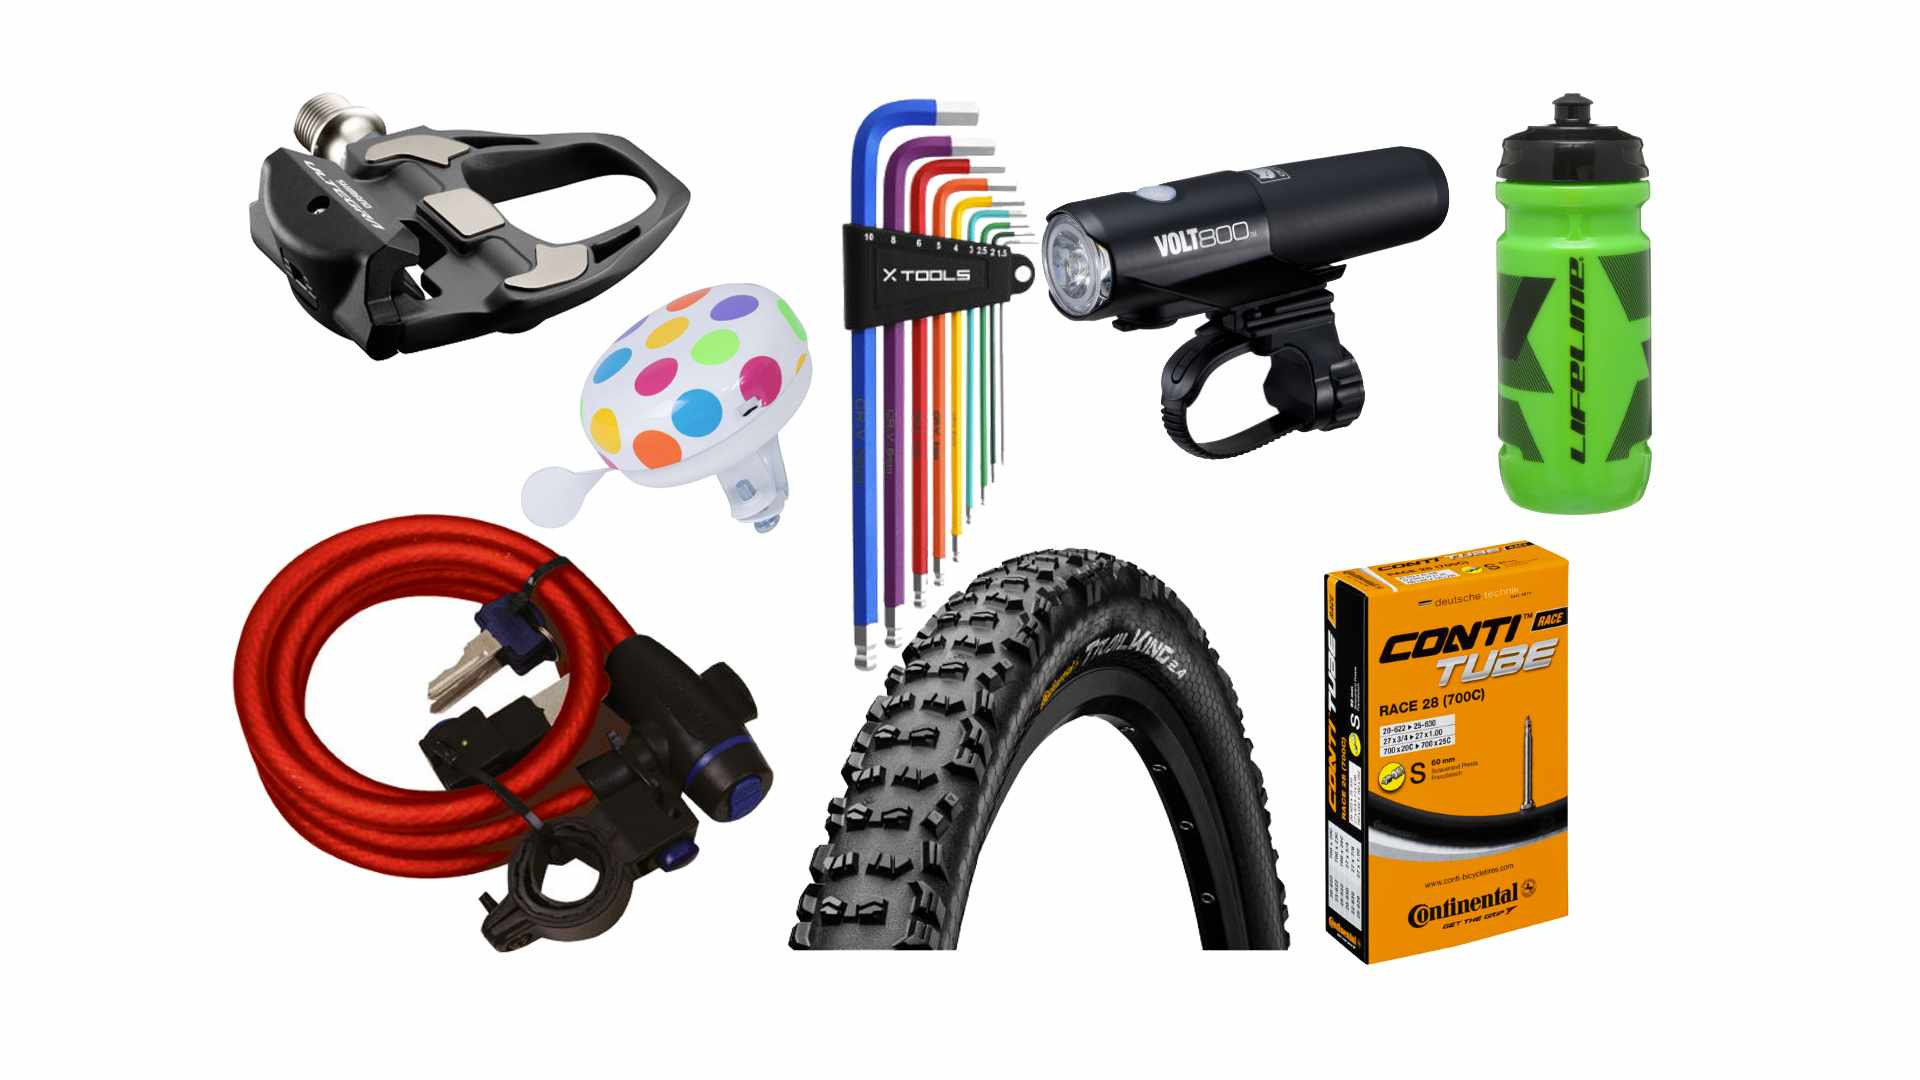 Collage of a range of cycling accessories on a white background, including a pedal, light, colourful Allen key set, bell, lock, tyre, inner tube in a box and a light